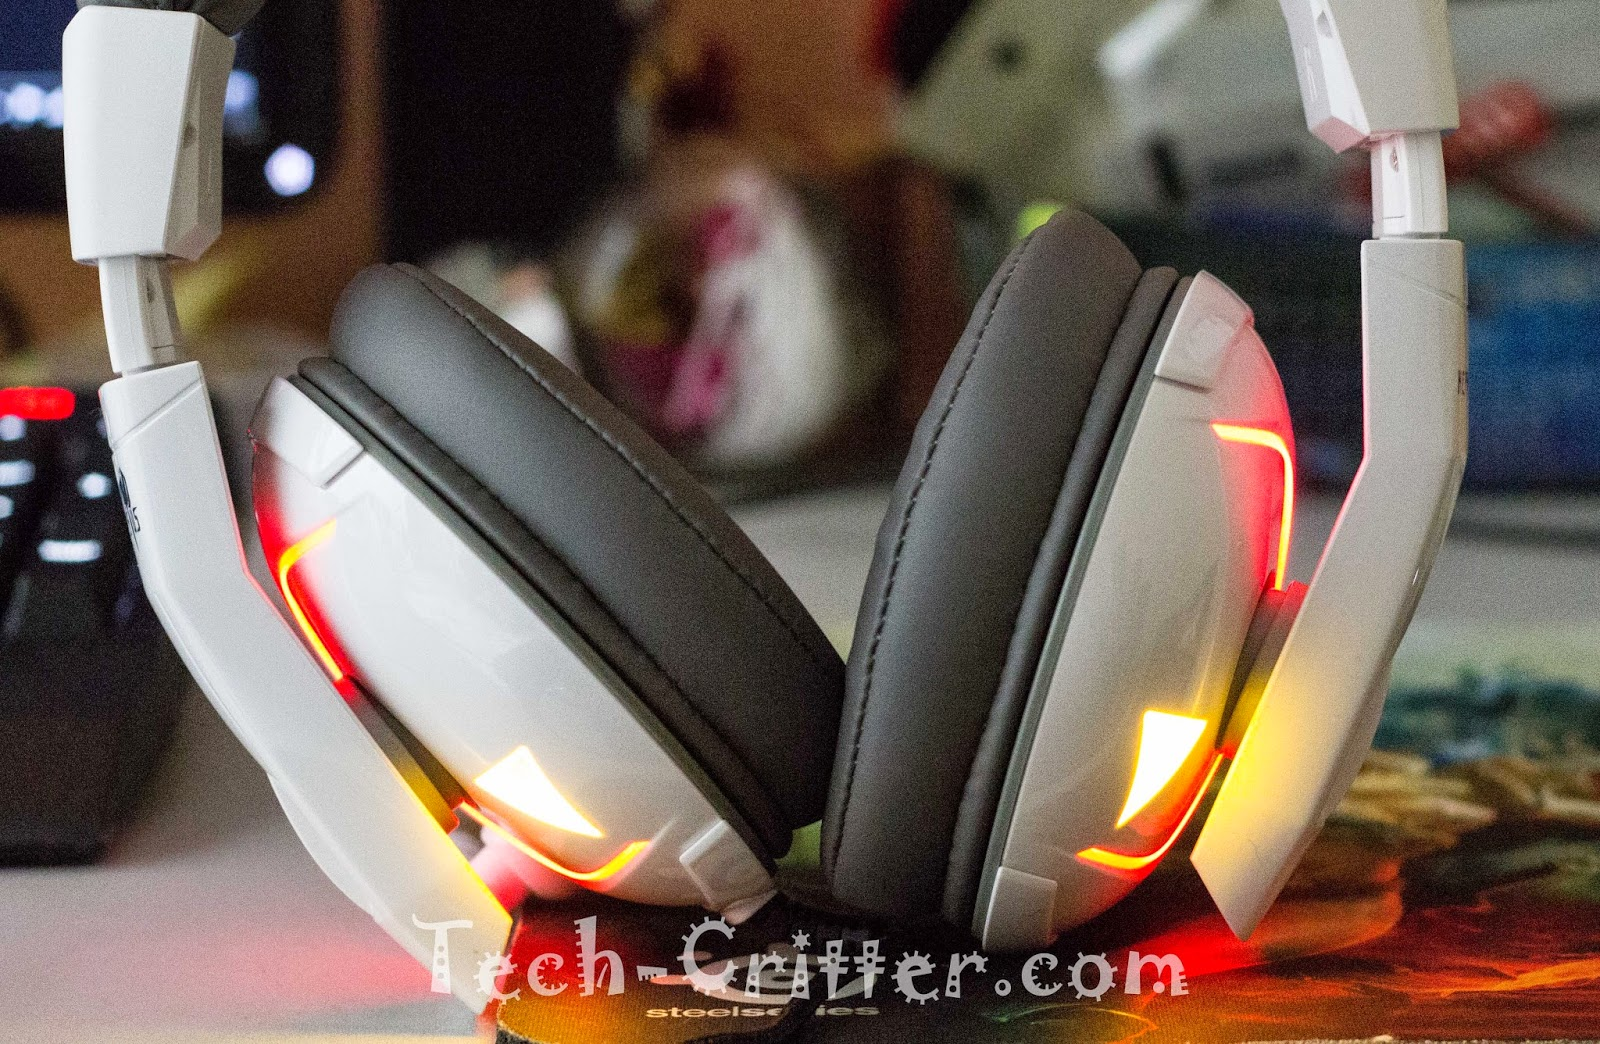 Unboxing & Review: Gamdias Hephaestus Gaming Headset 72